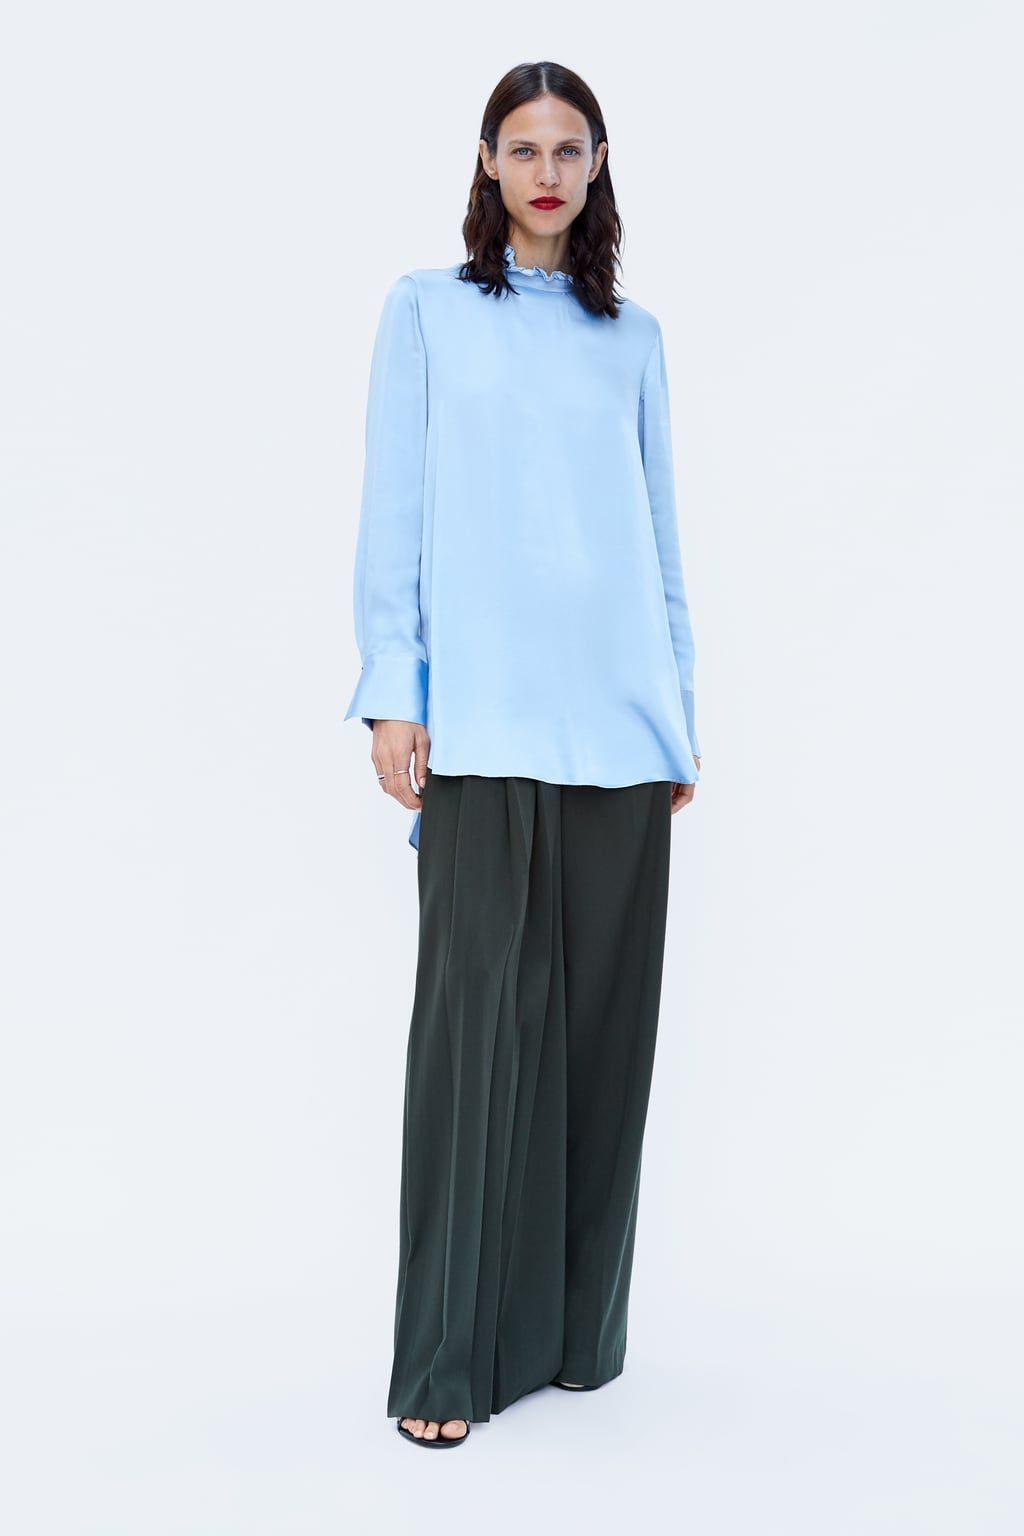 aaeacecaa Image 1 of ASYMMETRIC SATEEN BLOUSE from Zara | Here and now ...